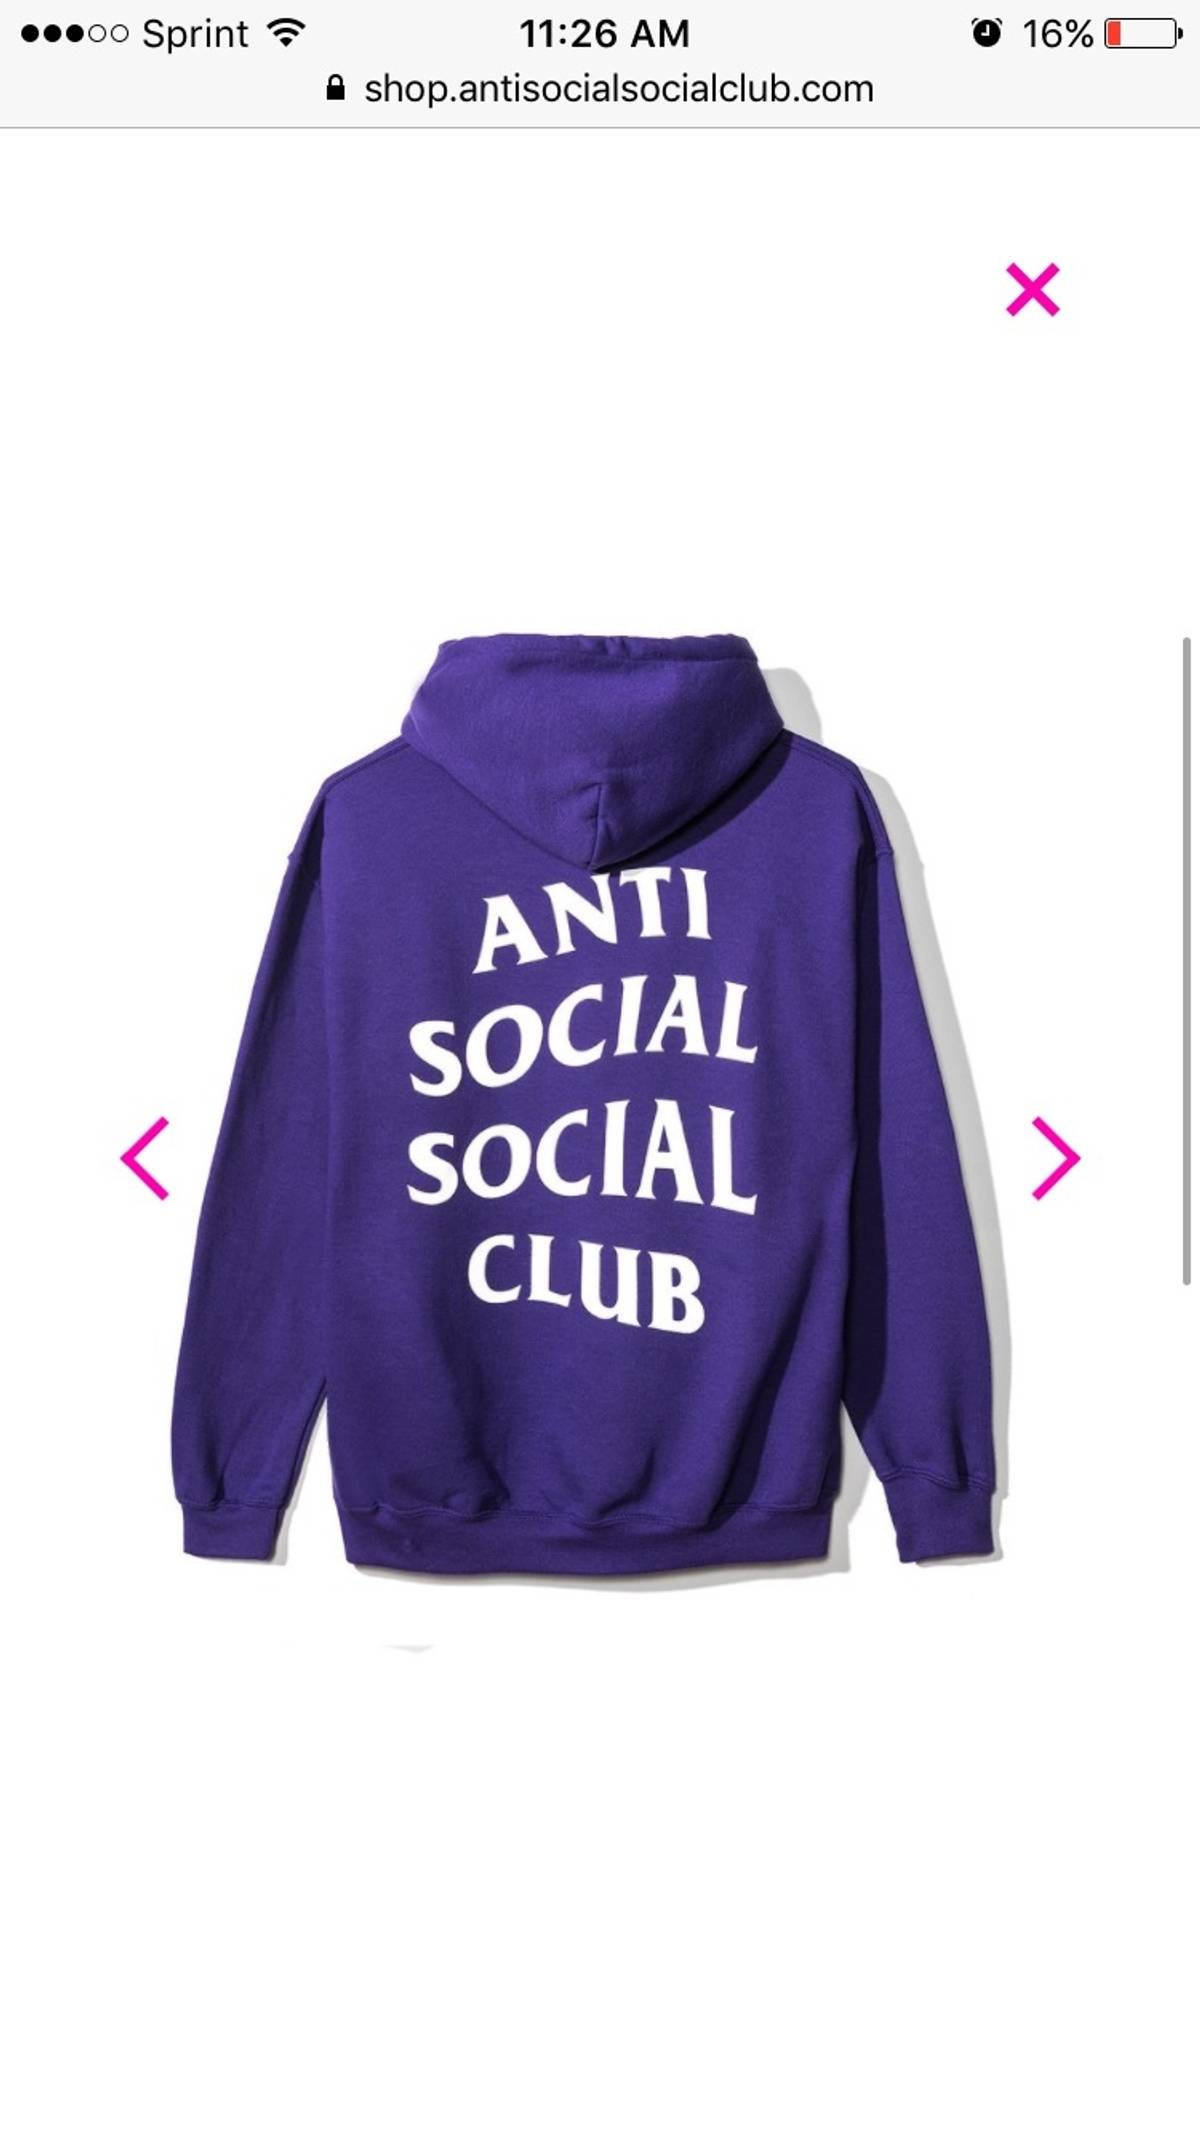 d0a132dcd833 Antisocial Social Club Anti Social Social Club Purple Rain Hoody Size m -  Sweatshirts   Hoodies for Sale - Grailed